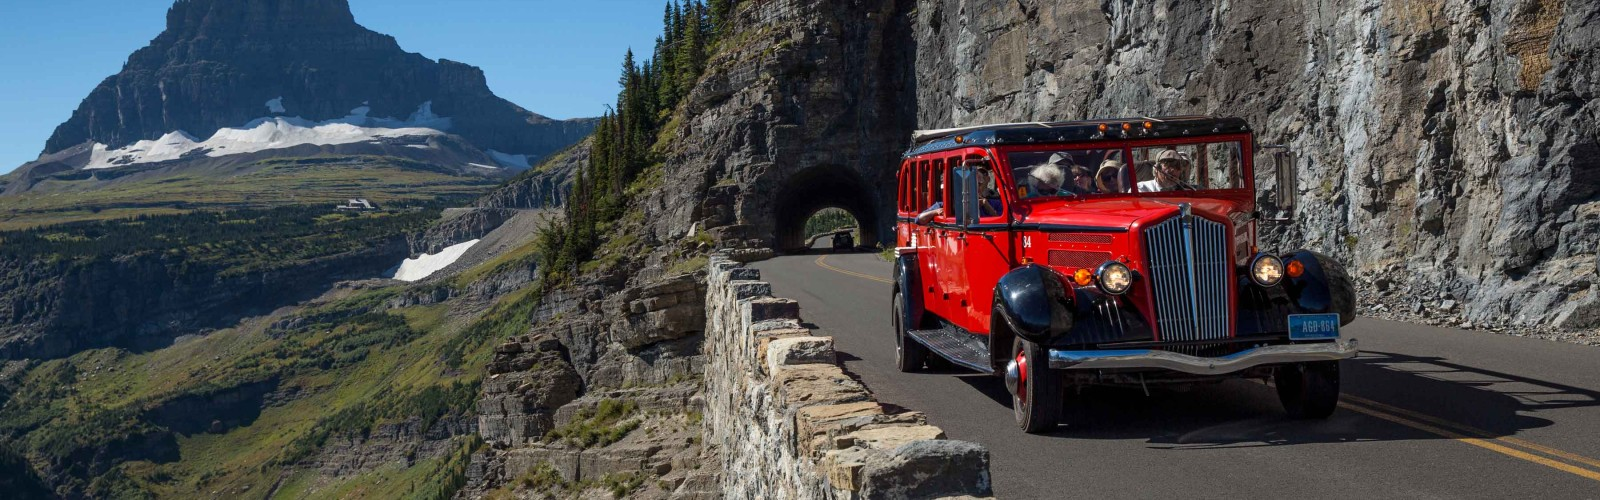 Glacier National Park Red Bus